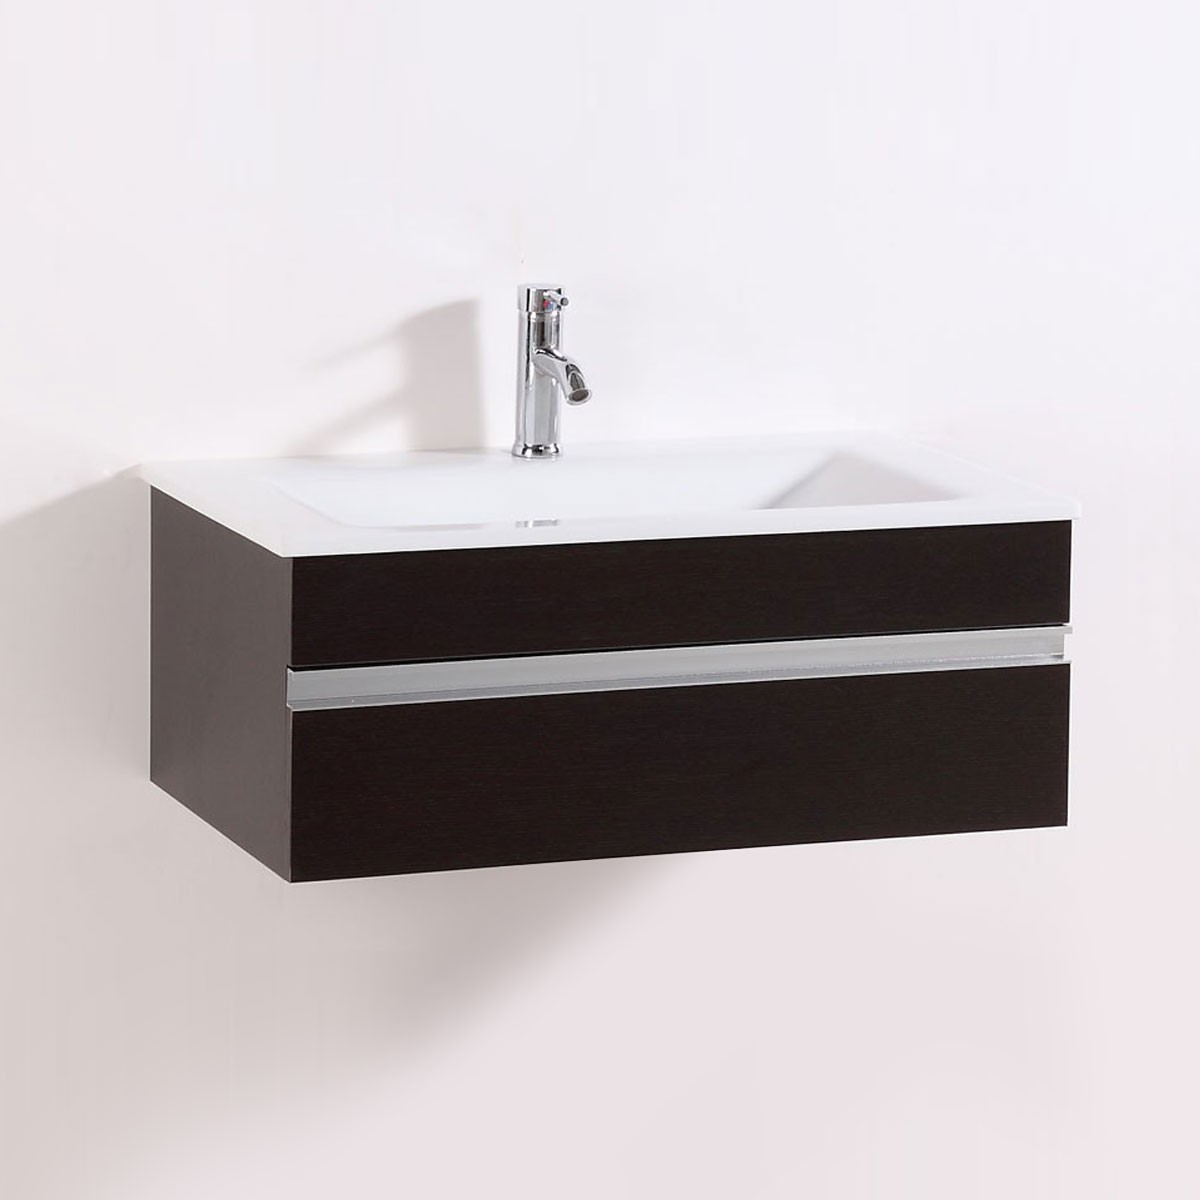 32 In. Wall Mount Bathroom Vanity (DK-TH9021D-V)